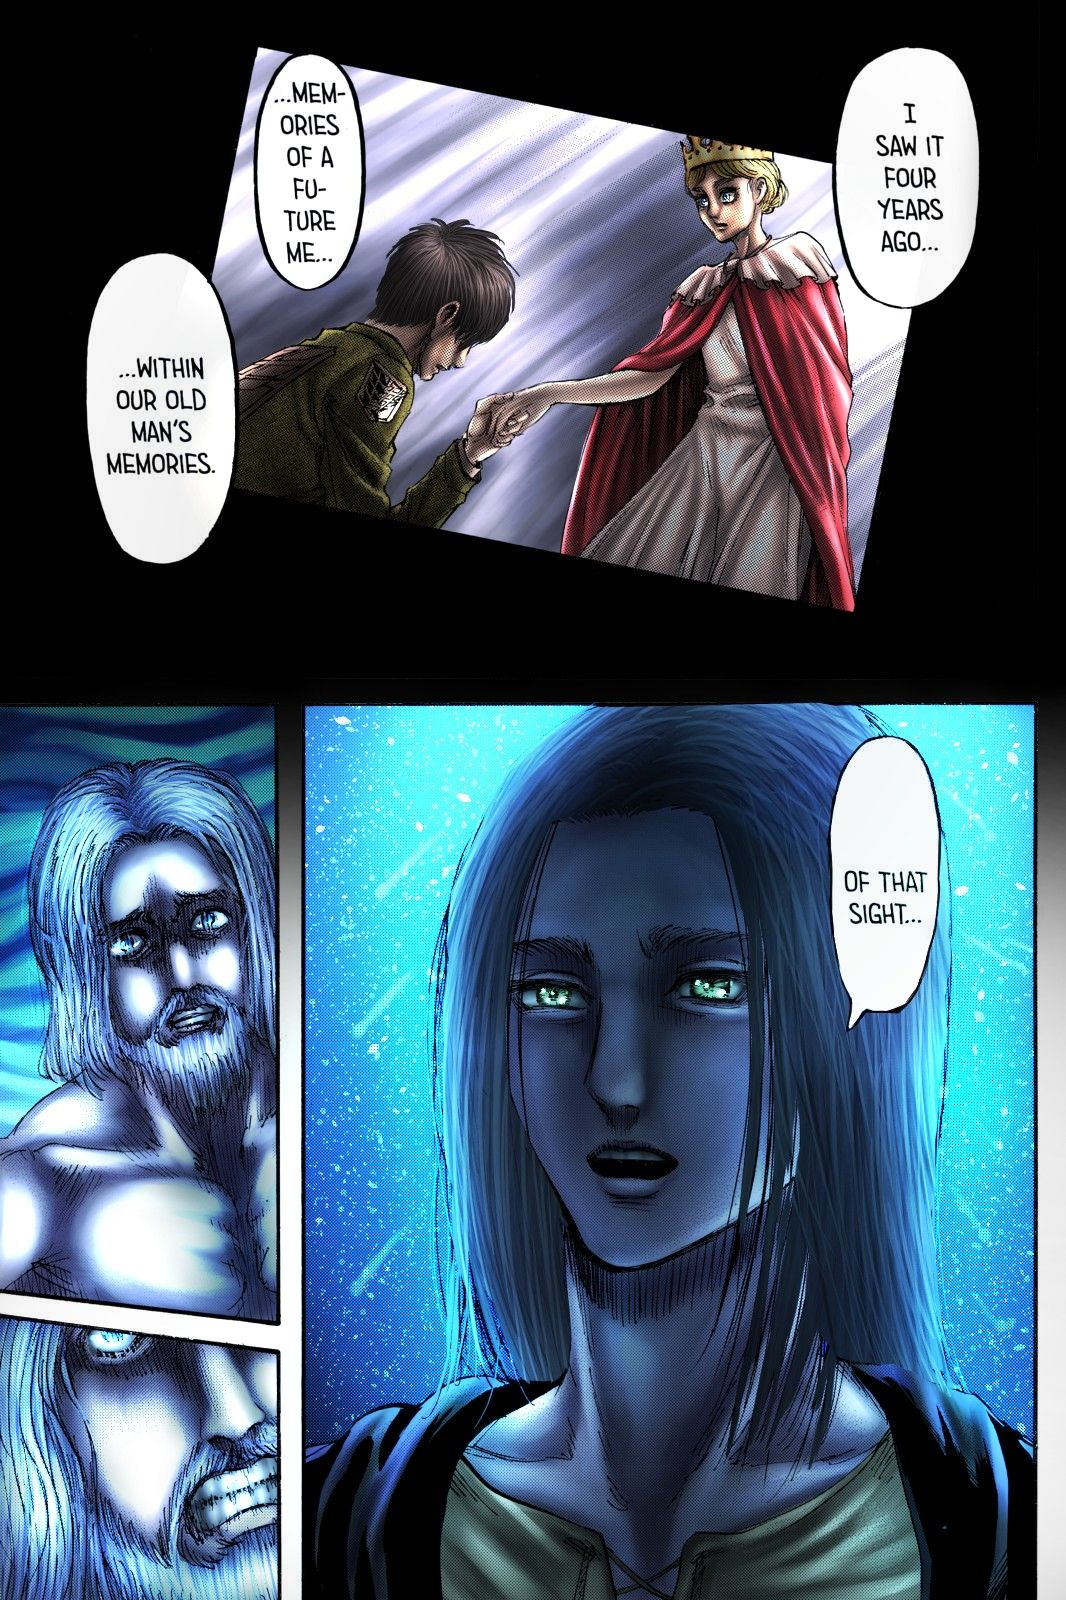 Shingeki No Kyojin Colored Chapter 121 Attack On Titan Anime Attack On Titan Eren Attack On Titan Fanart